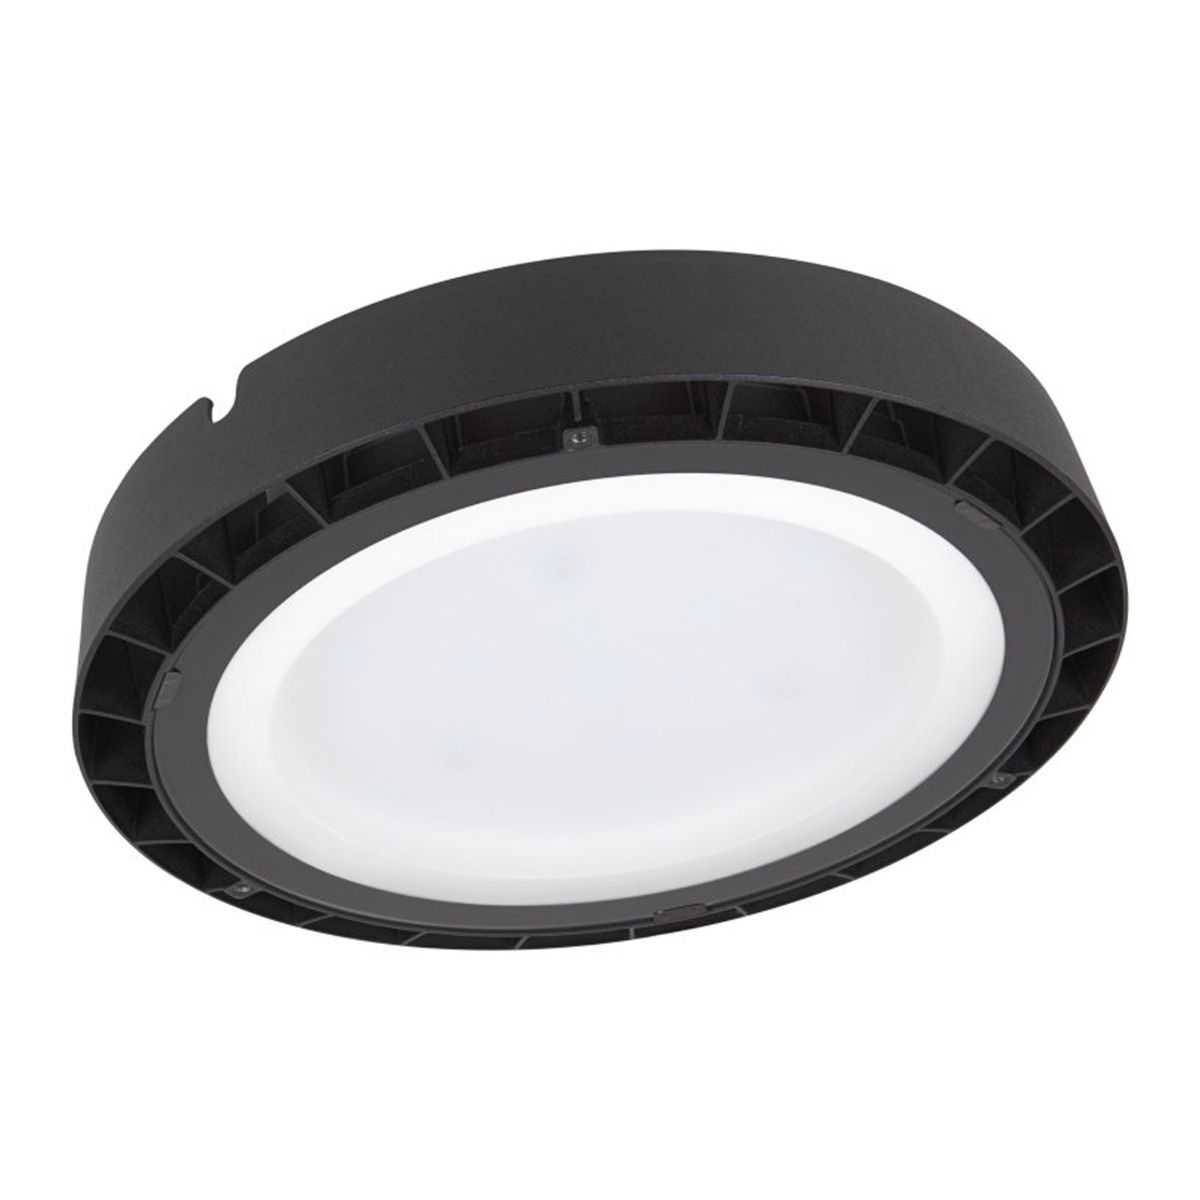 Ledvance LED High Bay Value 200W 6500K IP65 20000lm 100D | Dagsljus - Ersättare 400W